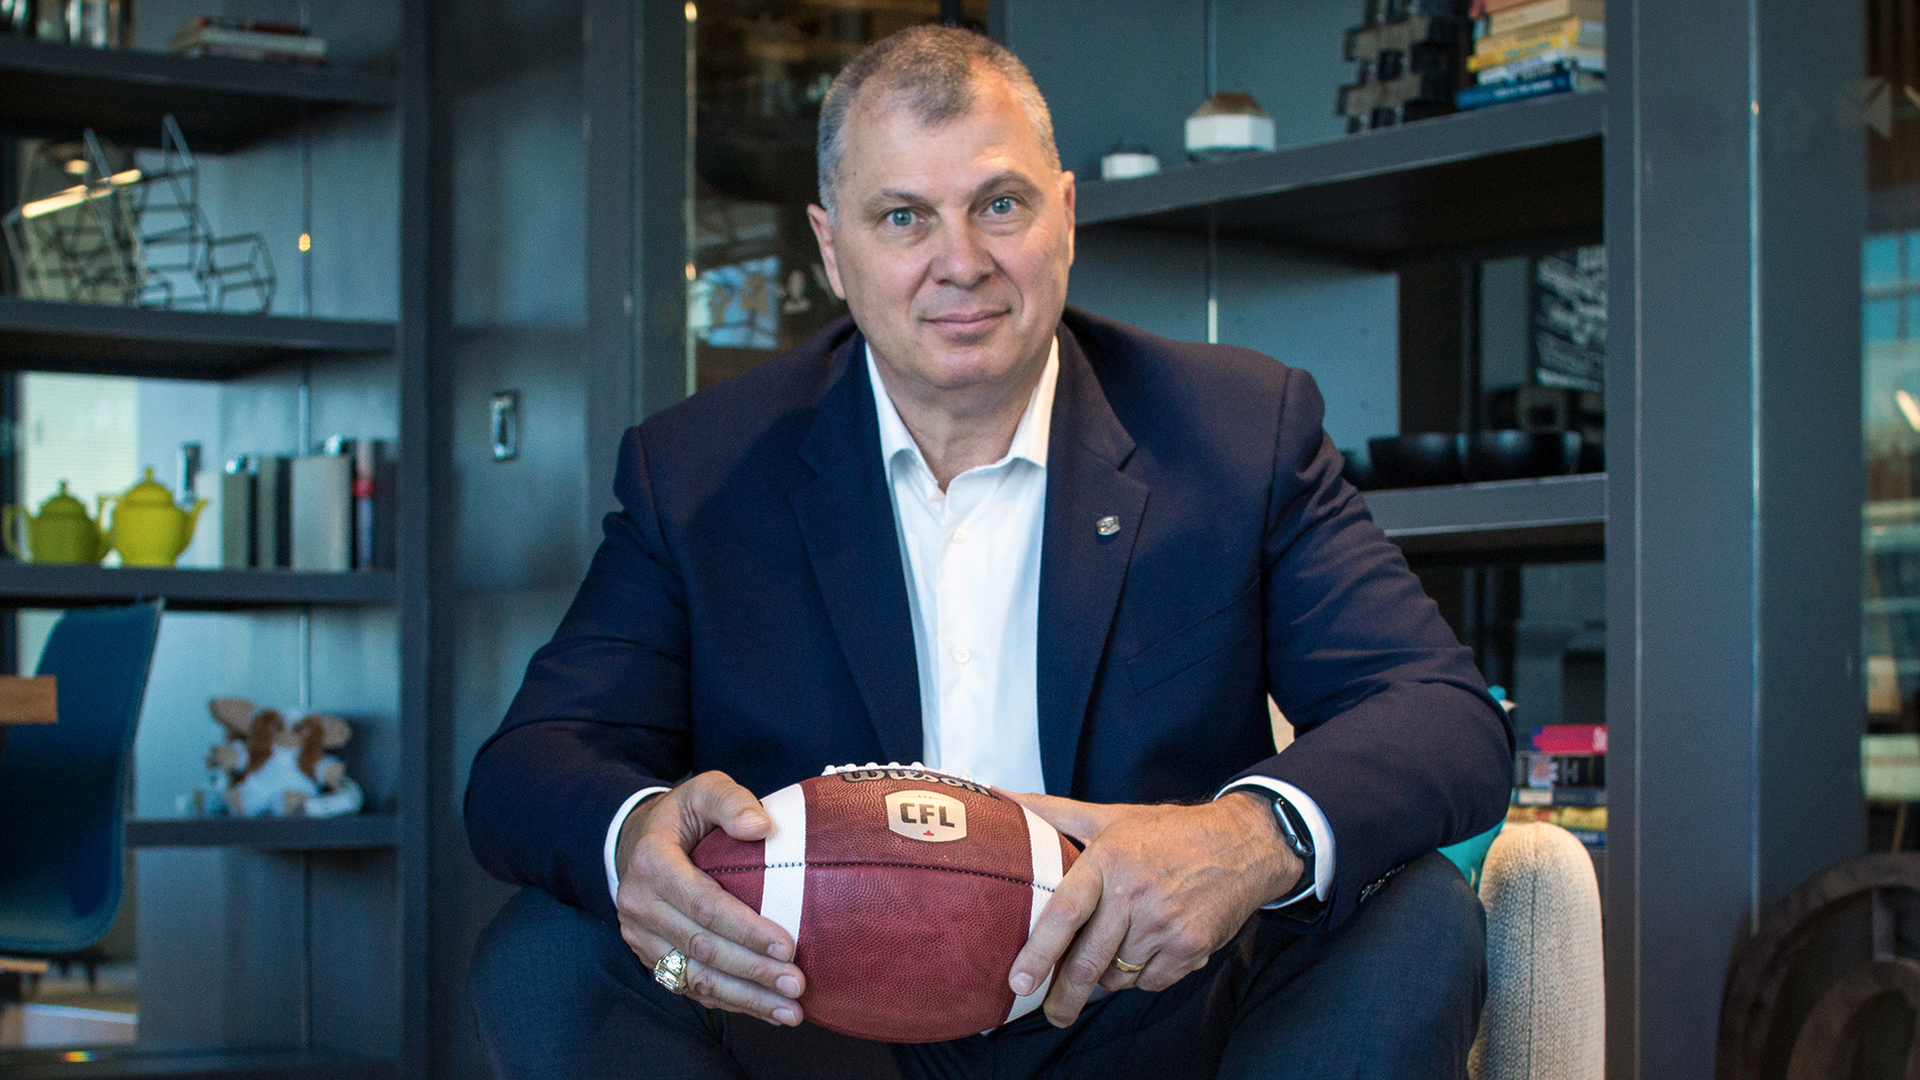 Commissioner Ambrosie speaks on the CFL's return to play plan